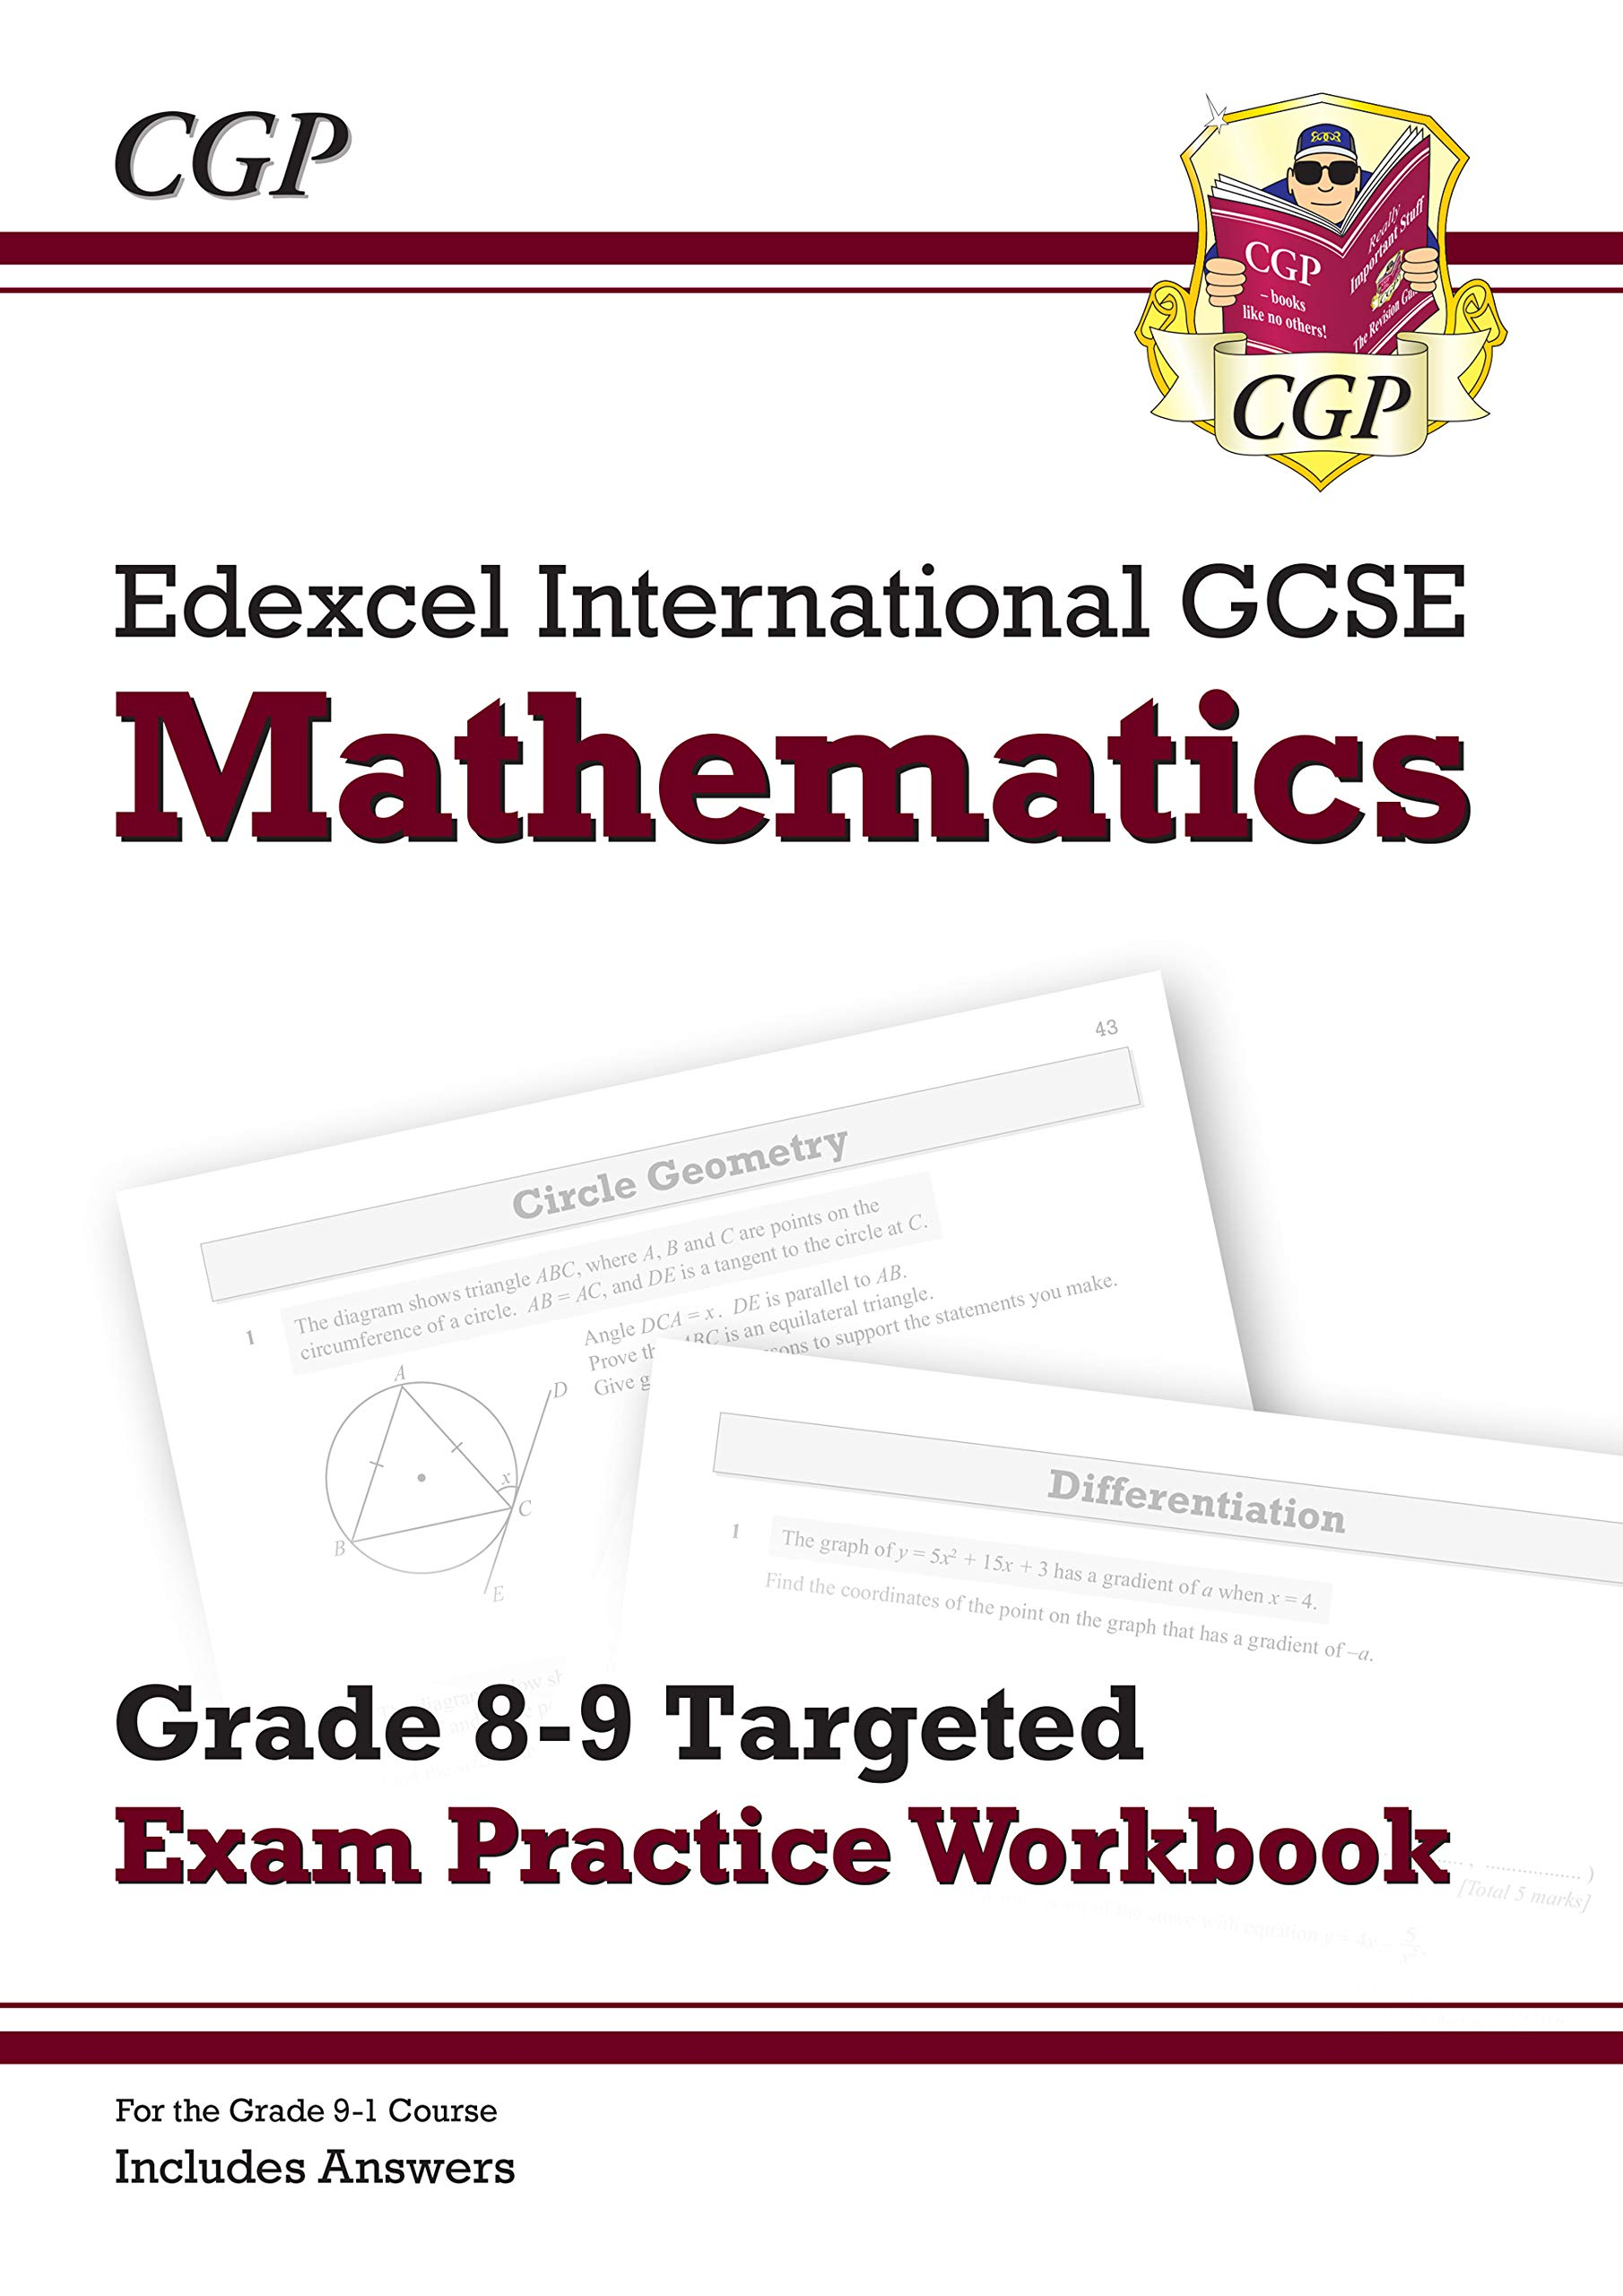 New Edexcel International GCSE Maths Grade 8-9 Targeted Exam